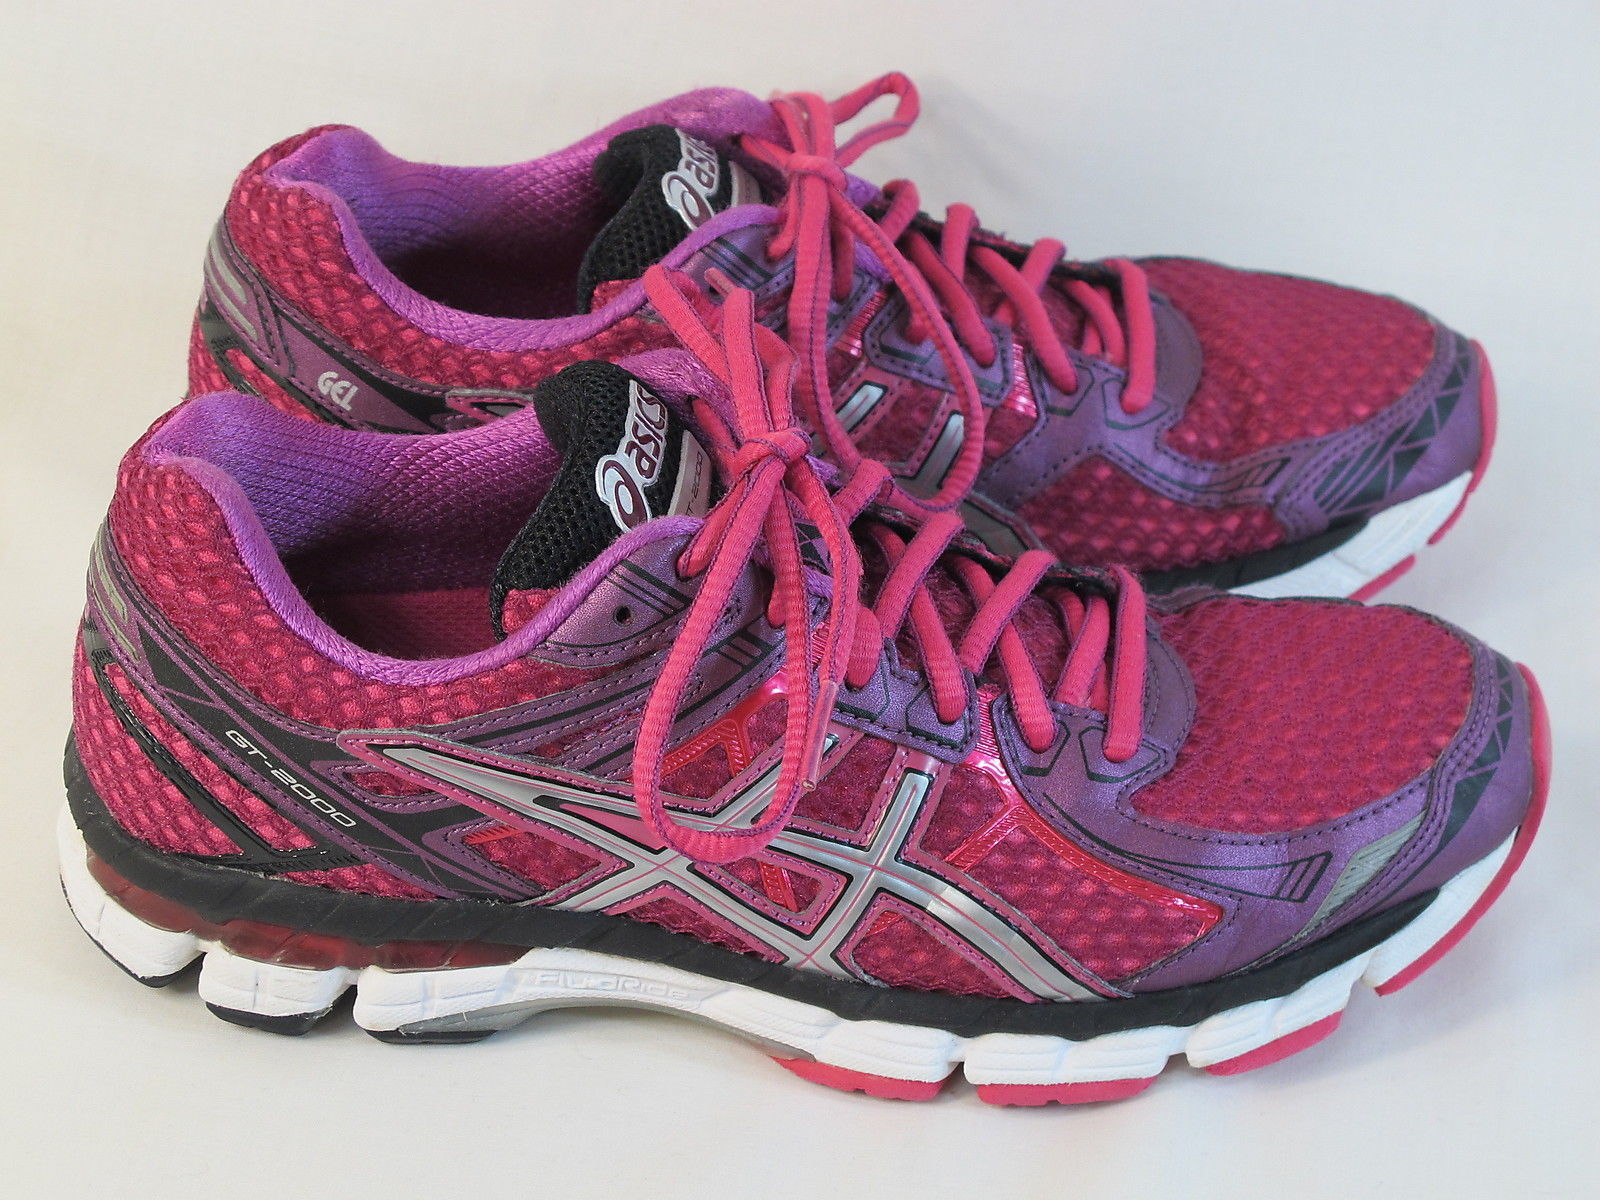 Primary image for ASICS GT 2000 2 Running Shoes Women's Size 8 US Excellent Plus Condition Purple